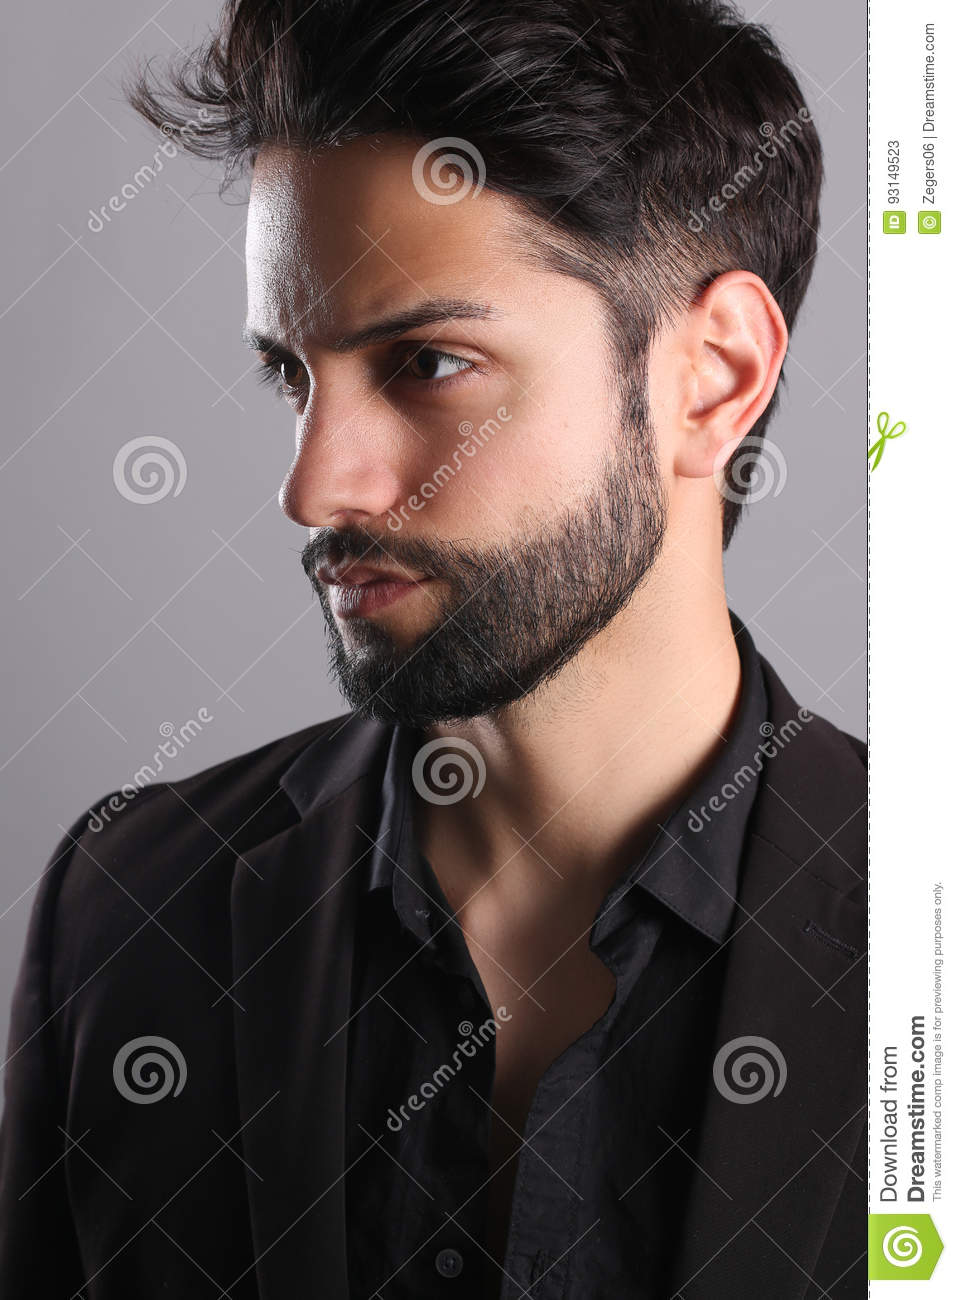 Handsome Man With A Low Fade Haircut Stock Image Image Of Fashion